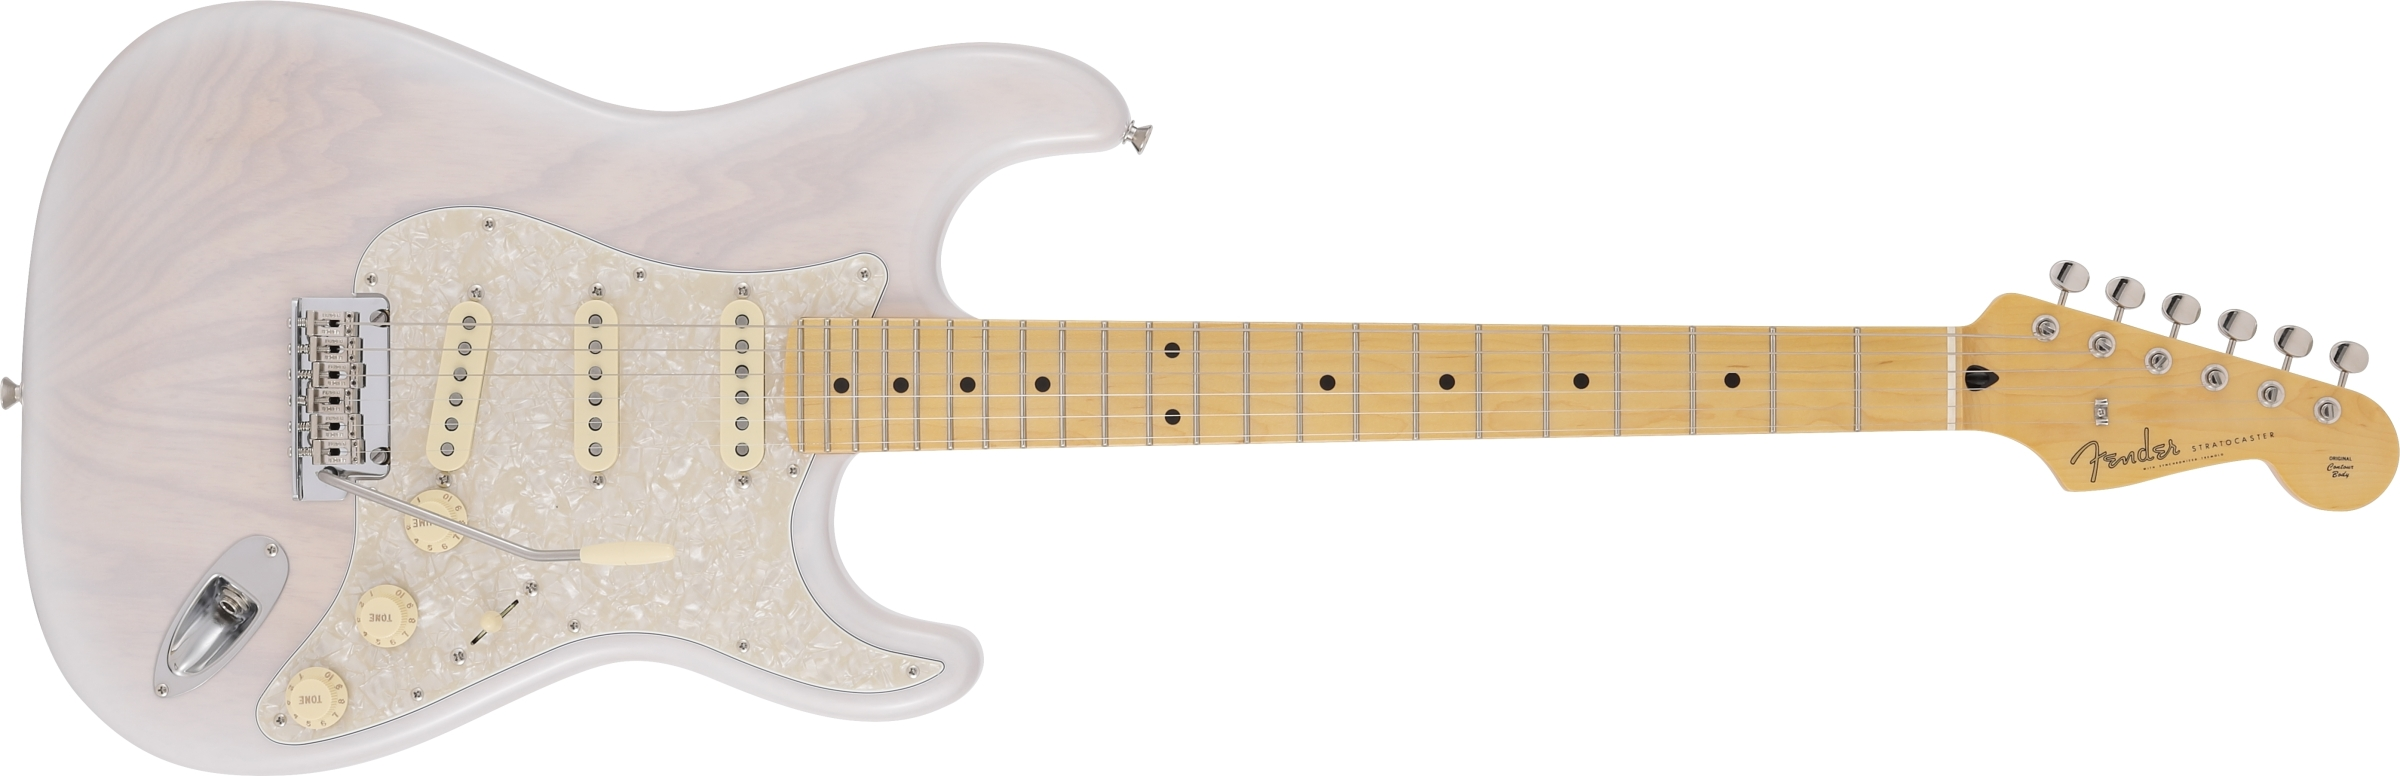 A Japan-only Fender Stratocaster